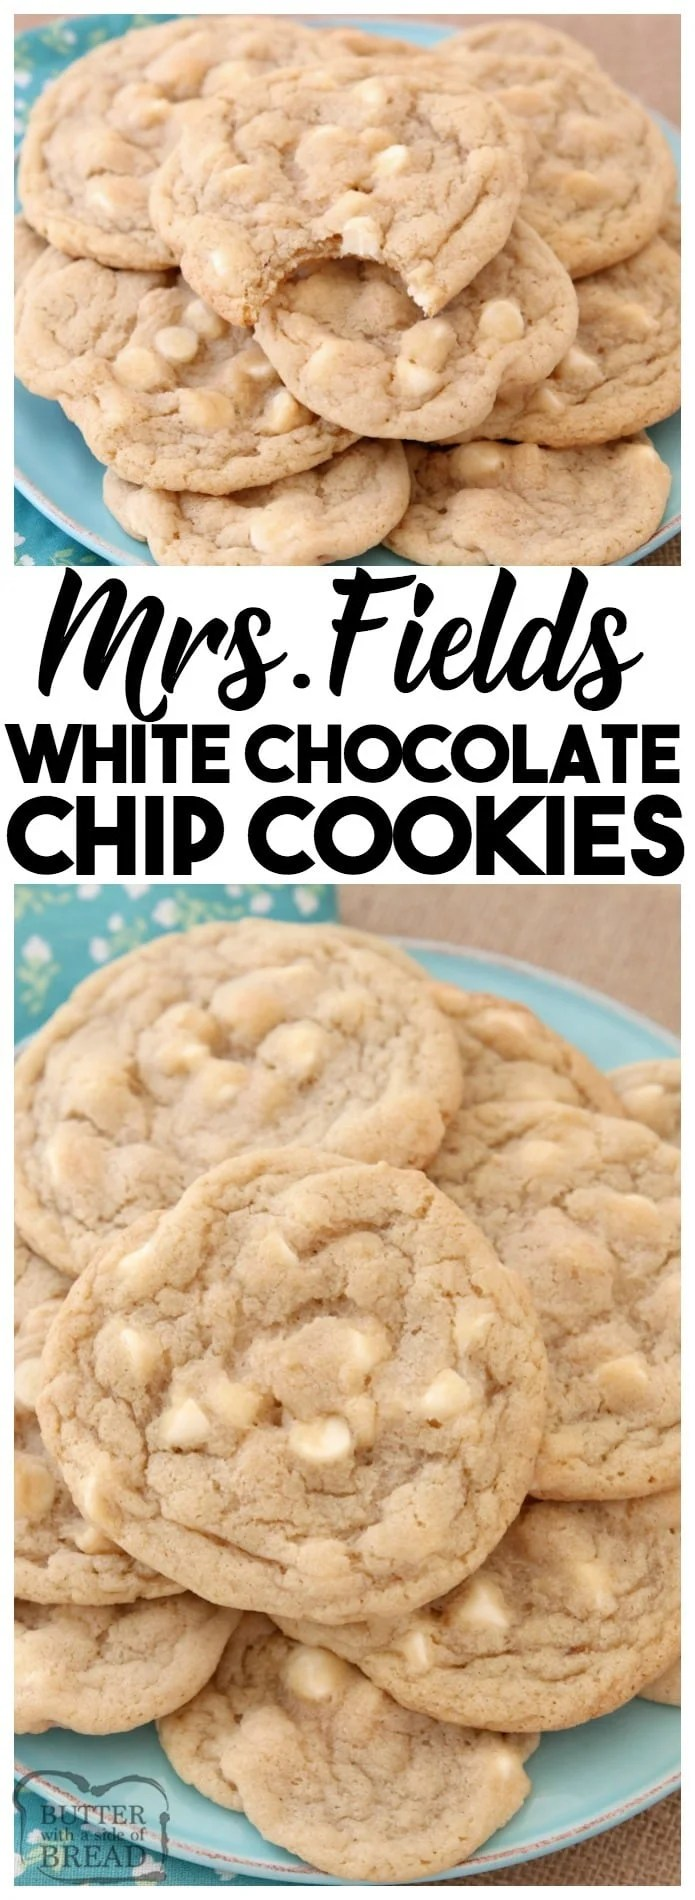 White Chocolate Chip Cookies are soft, delicious cookies filled with sweet white chocolate chips. Copycat Mrs.Field's cookie recipe that everyone can make at home!